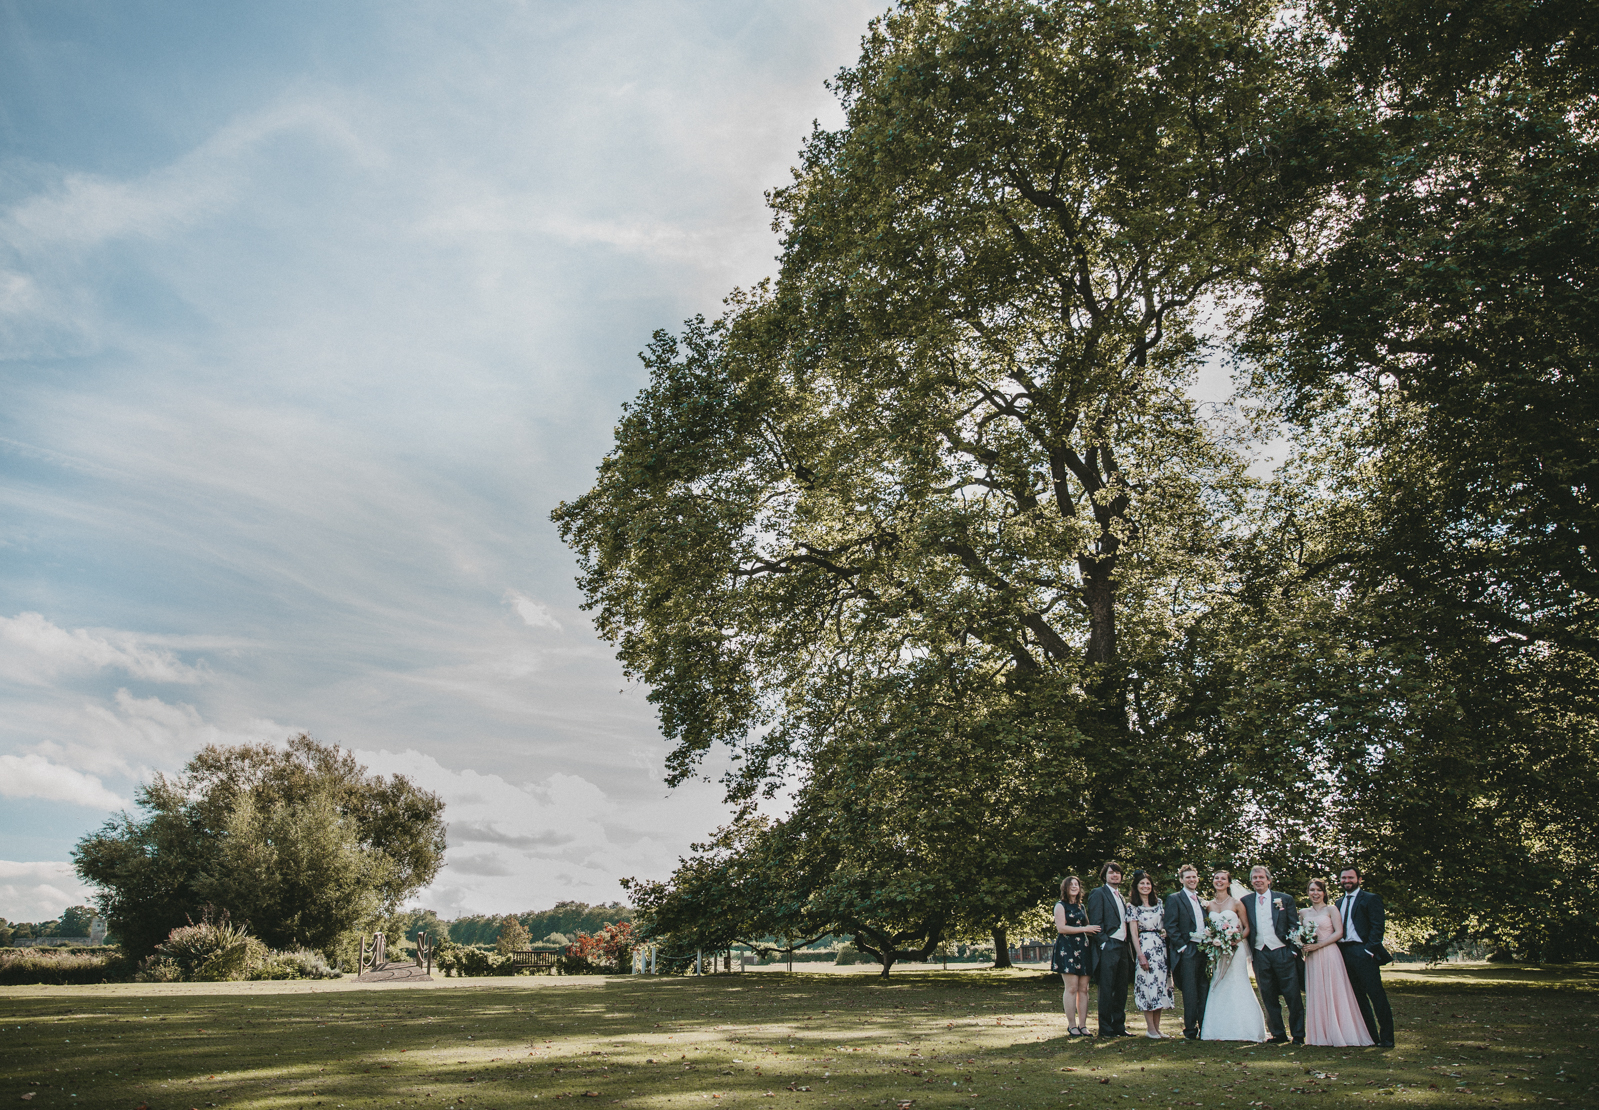 Chris Bradshaw Wedding Photography - Simon & Amanda Wedding Photos-81